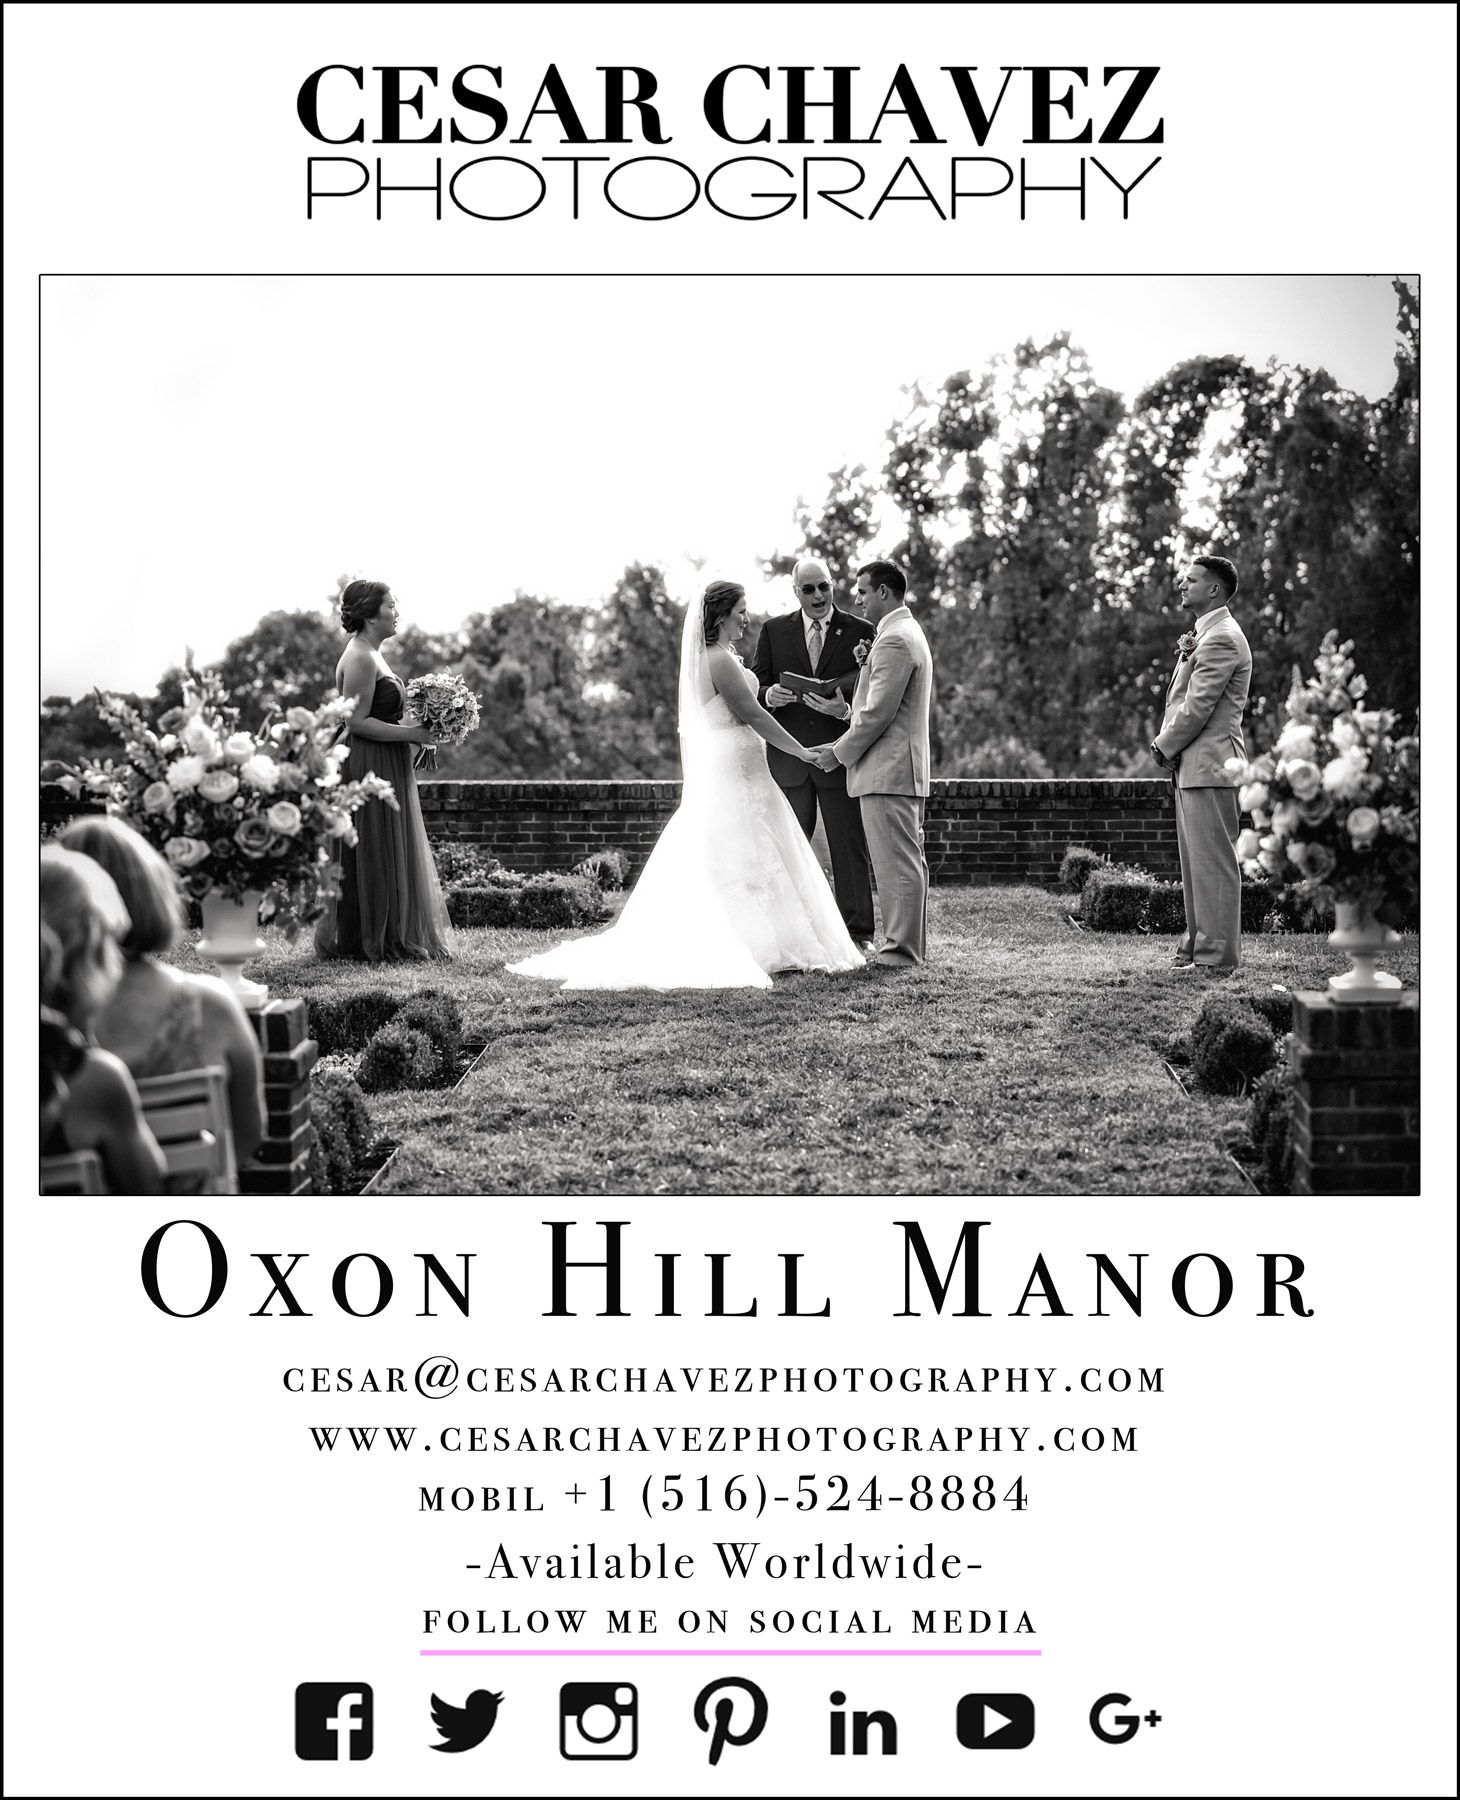 Pin by Cesar Chavez Photography on Oxon Hill Manor